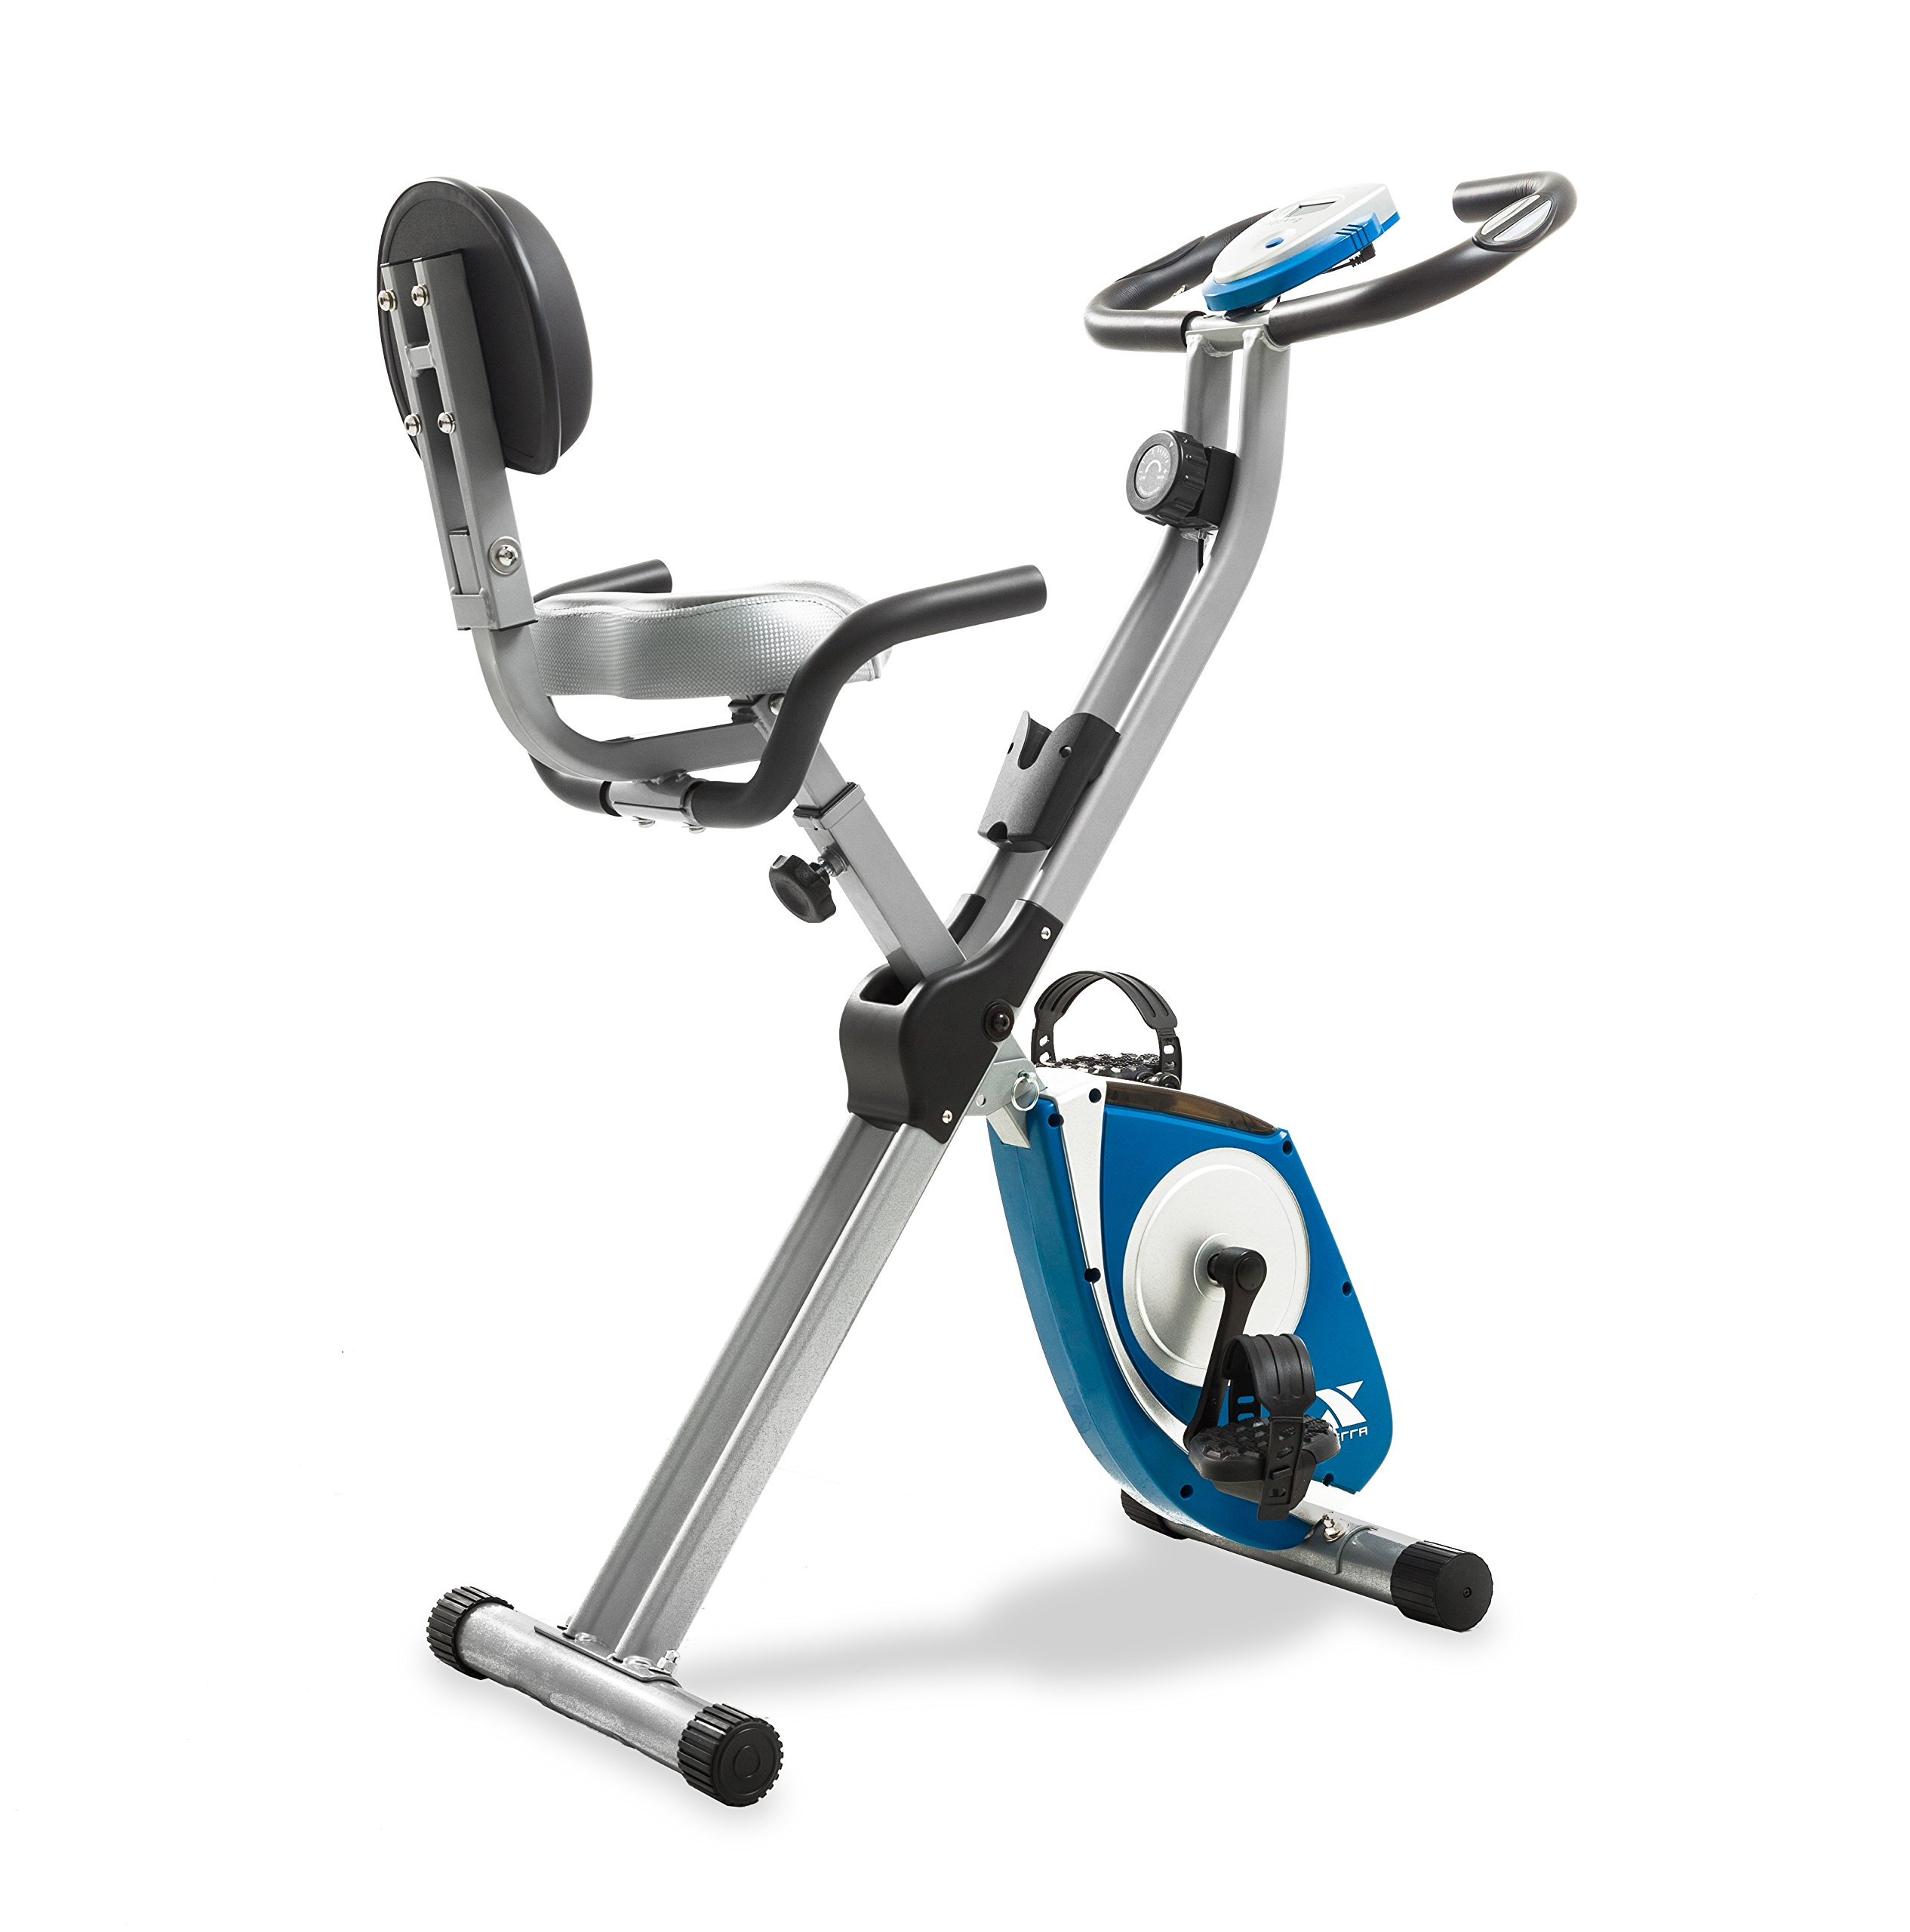 XTERRA Fitness FB350 Folding Exercise Bike, Silver by XTERRA Fitness (Image #1)